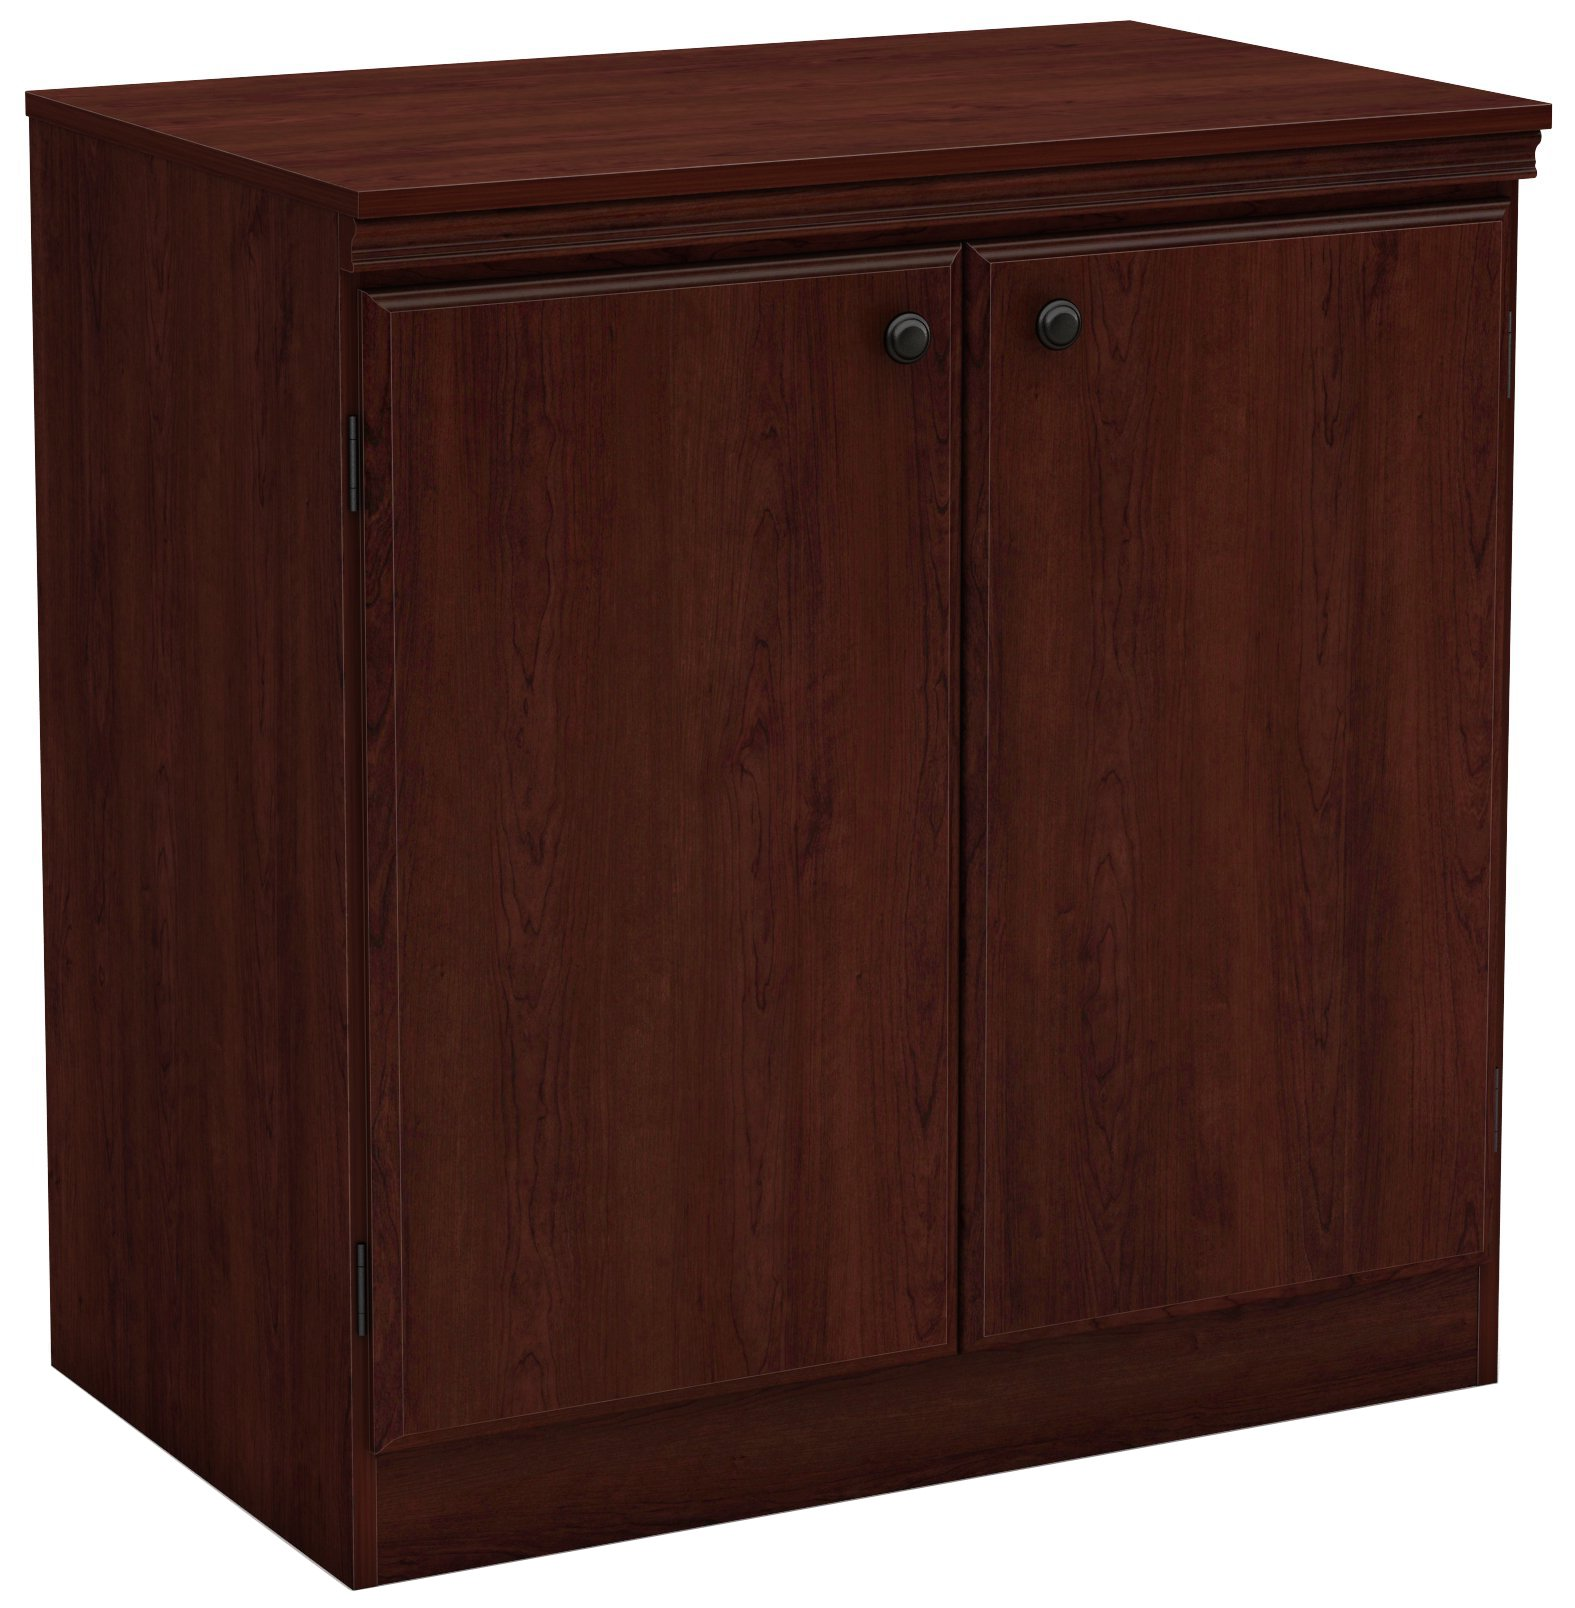 South Shore 7246722 Small 2-Door Storage Cabinet with Adjustable Shelf, Royal Cherry by South Shore